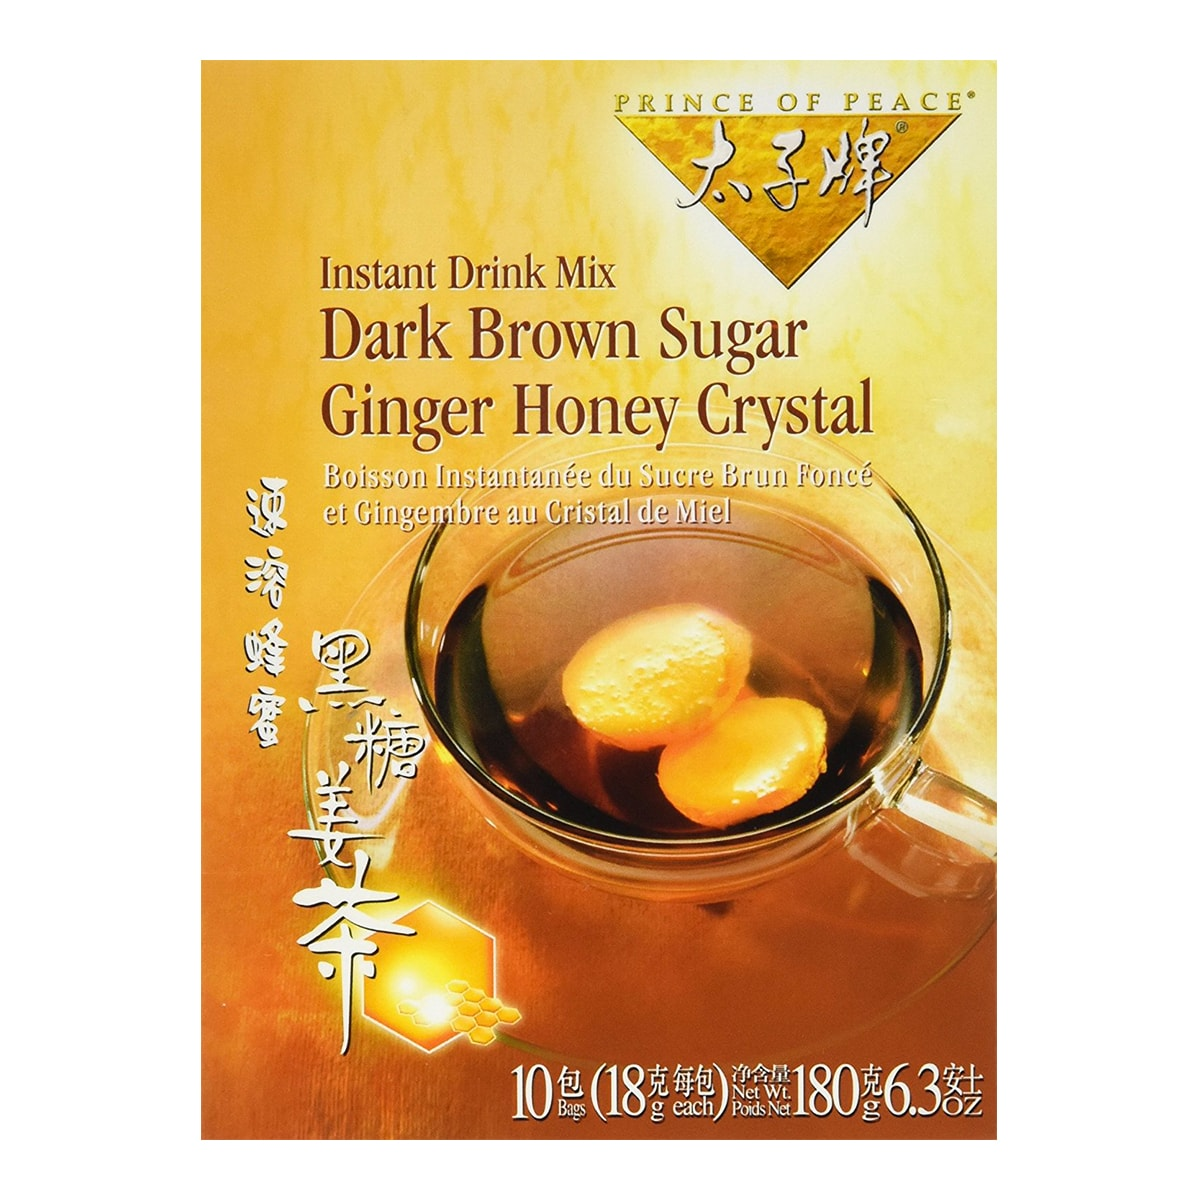 PRINCE OF PEACE Instant Drink Mix Dark Brown Sugar Ginger Honey Crystal Tea 10bags 180g